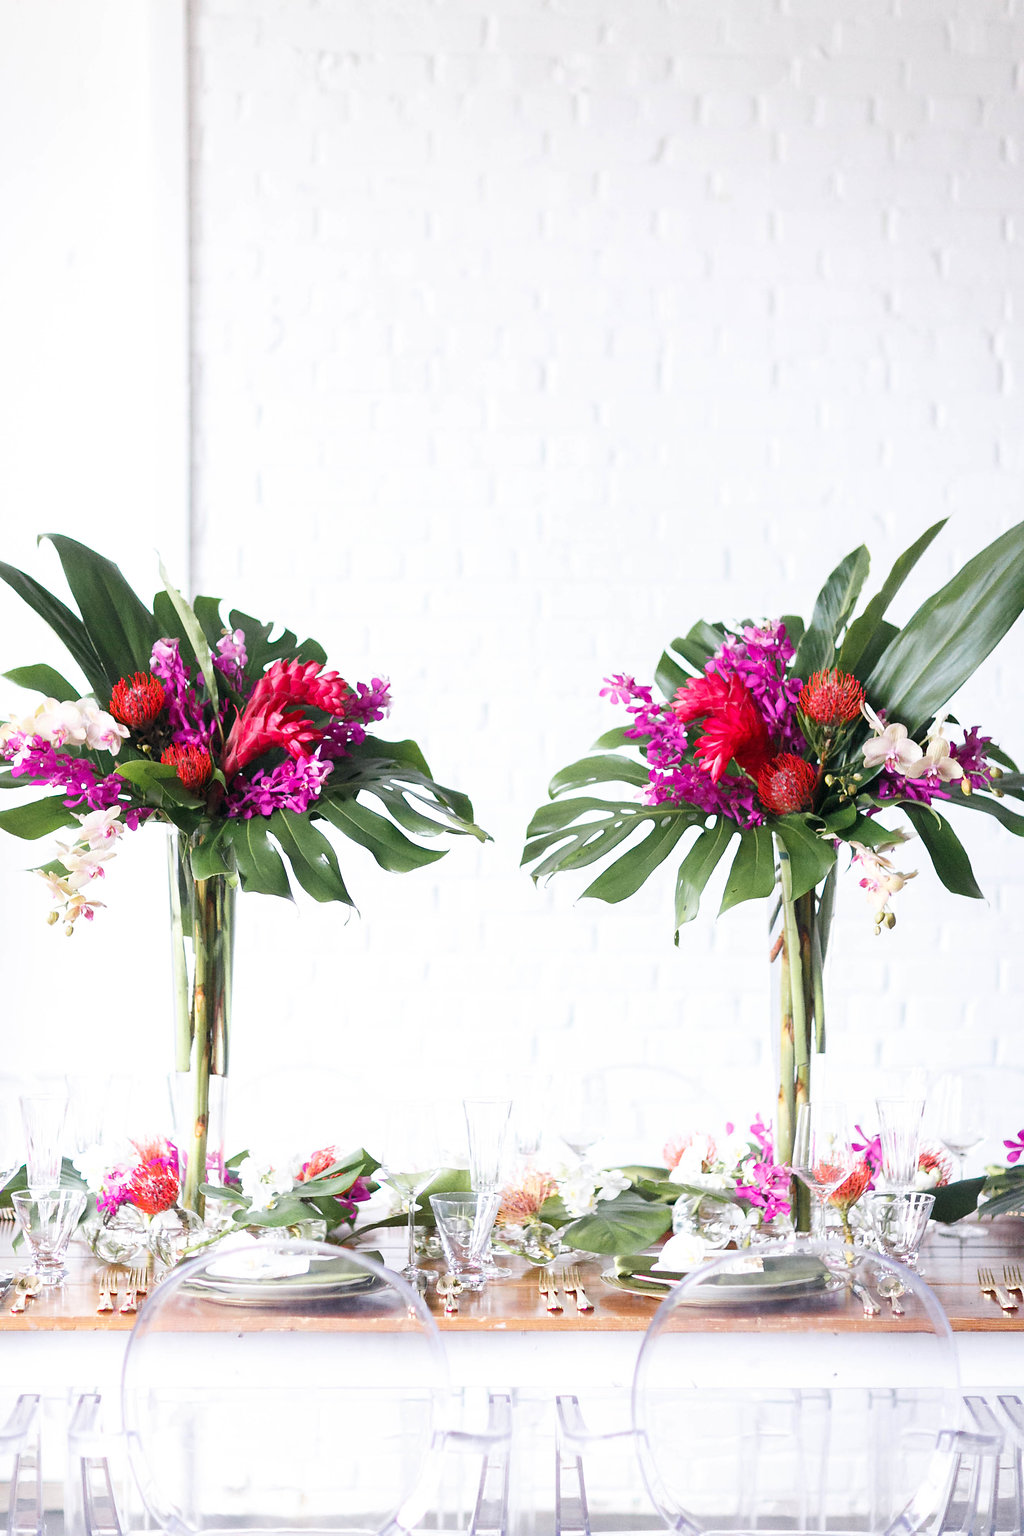 Modern Industrial Wedding Inspiration with Tropical Vibes - photo by Virginia Ashley Photography http://ruffledblog.com/modern-industrial-wedding-inspiration-with-tropical-vibes